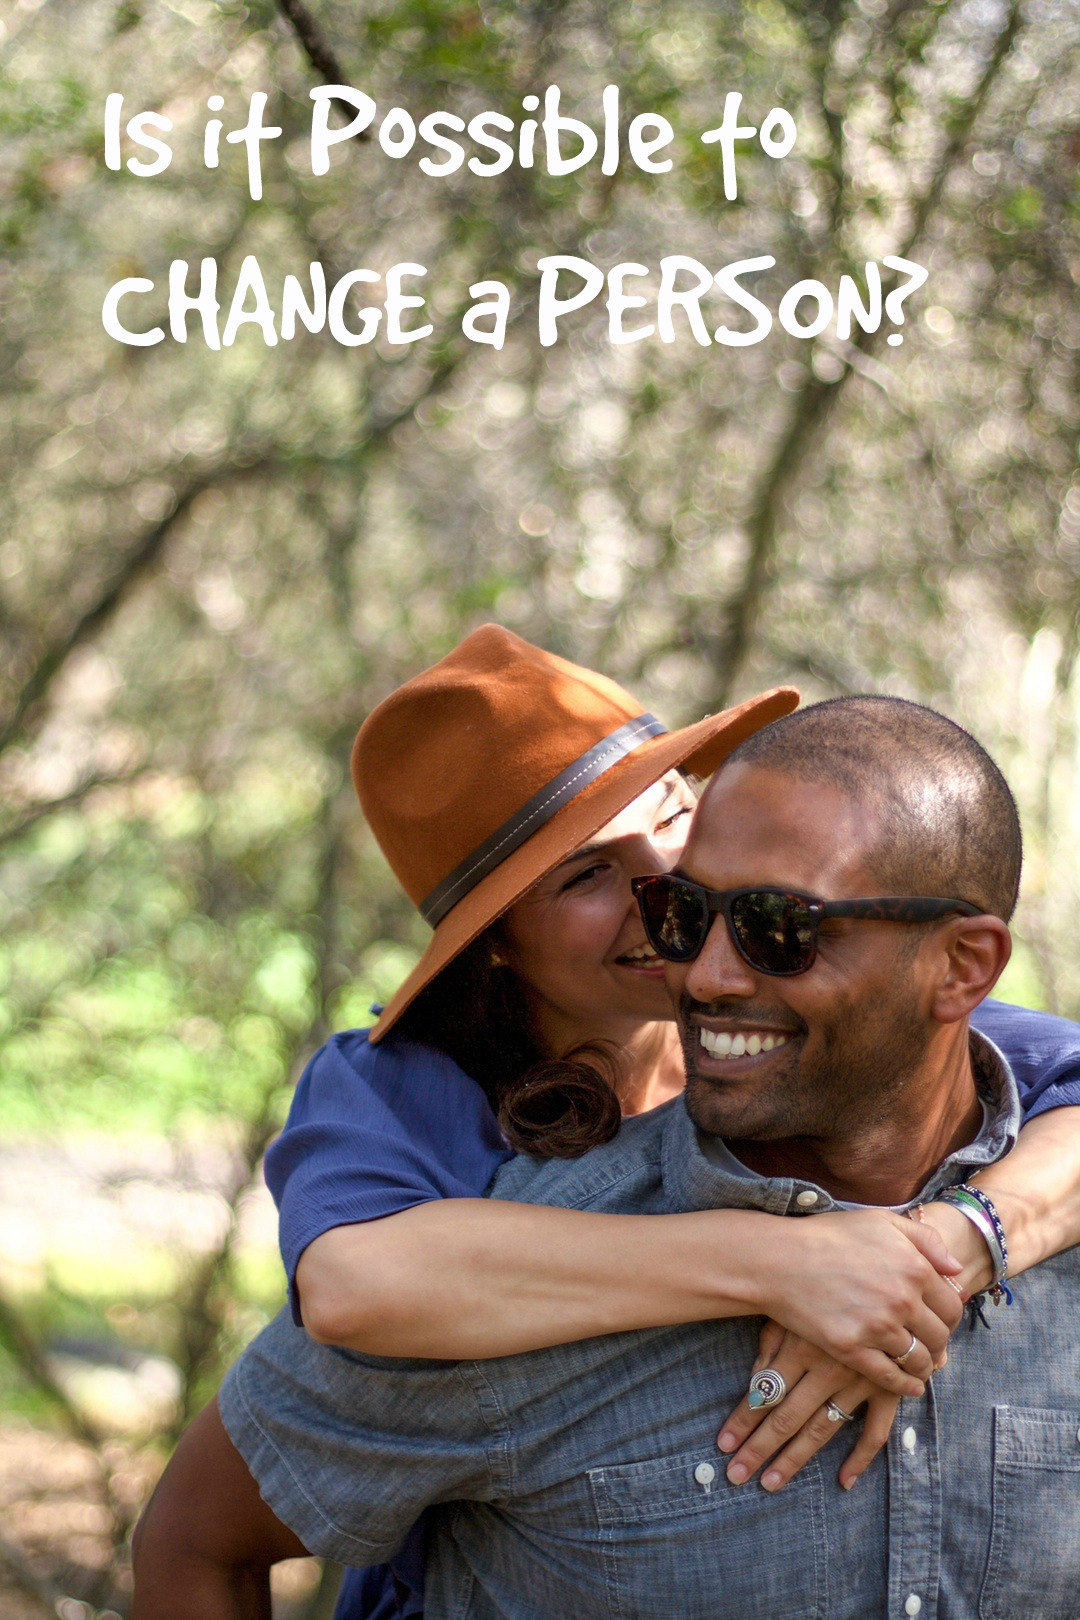 Is it Possible to CHANGE a PERSON?